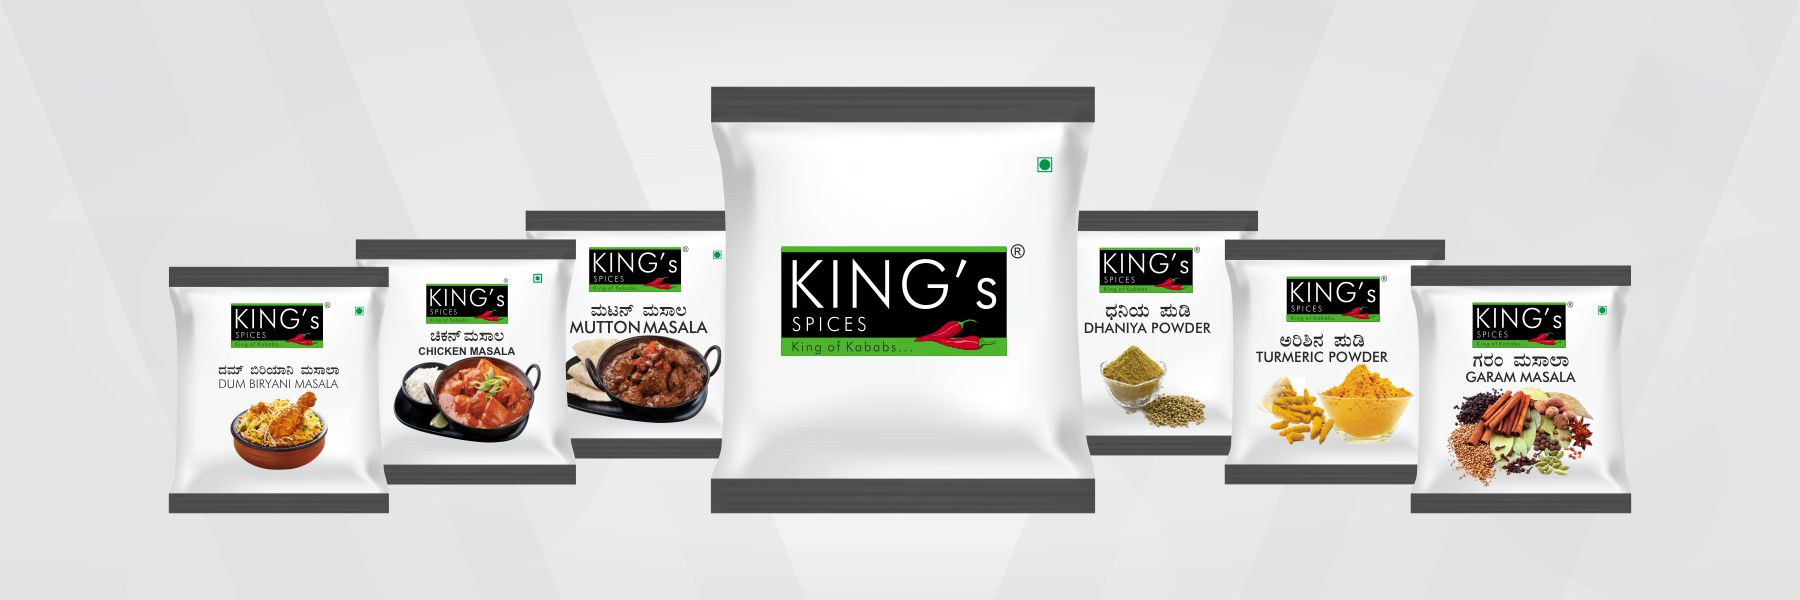 King Spices